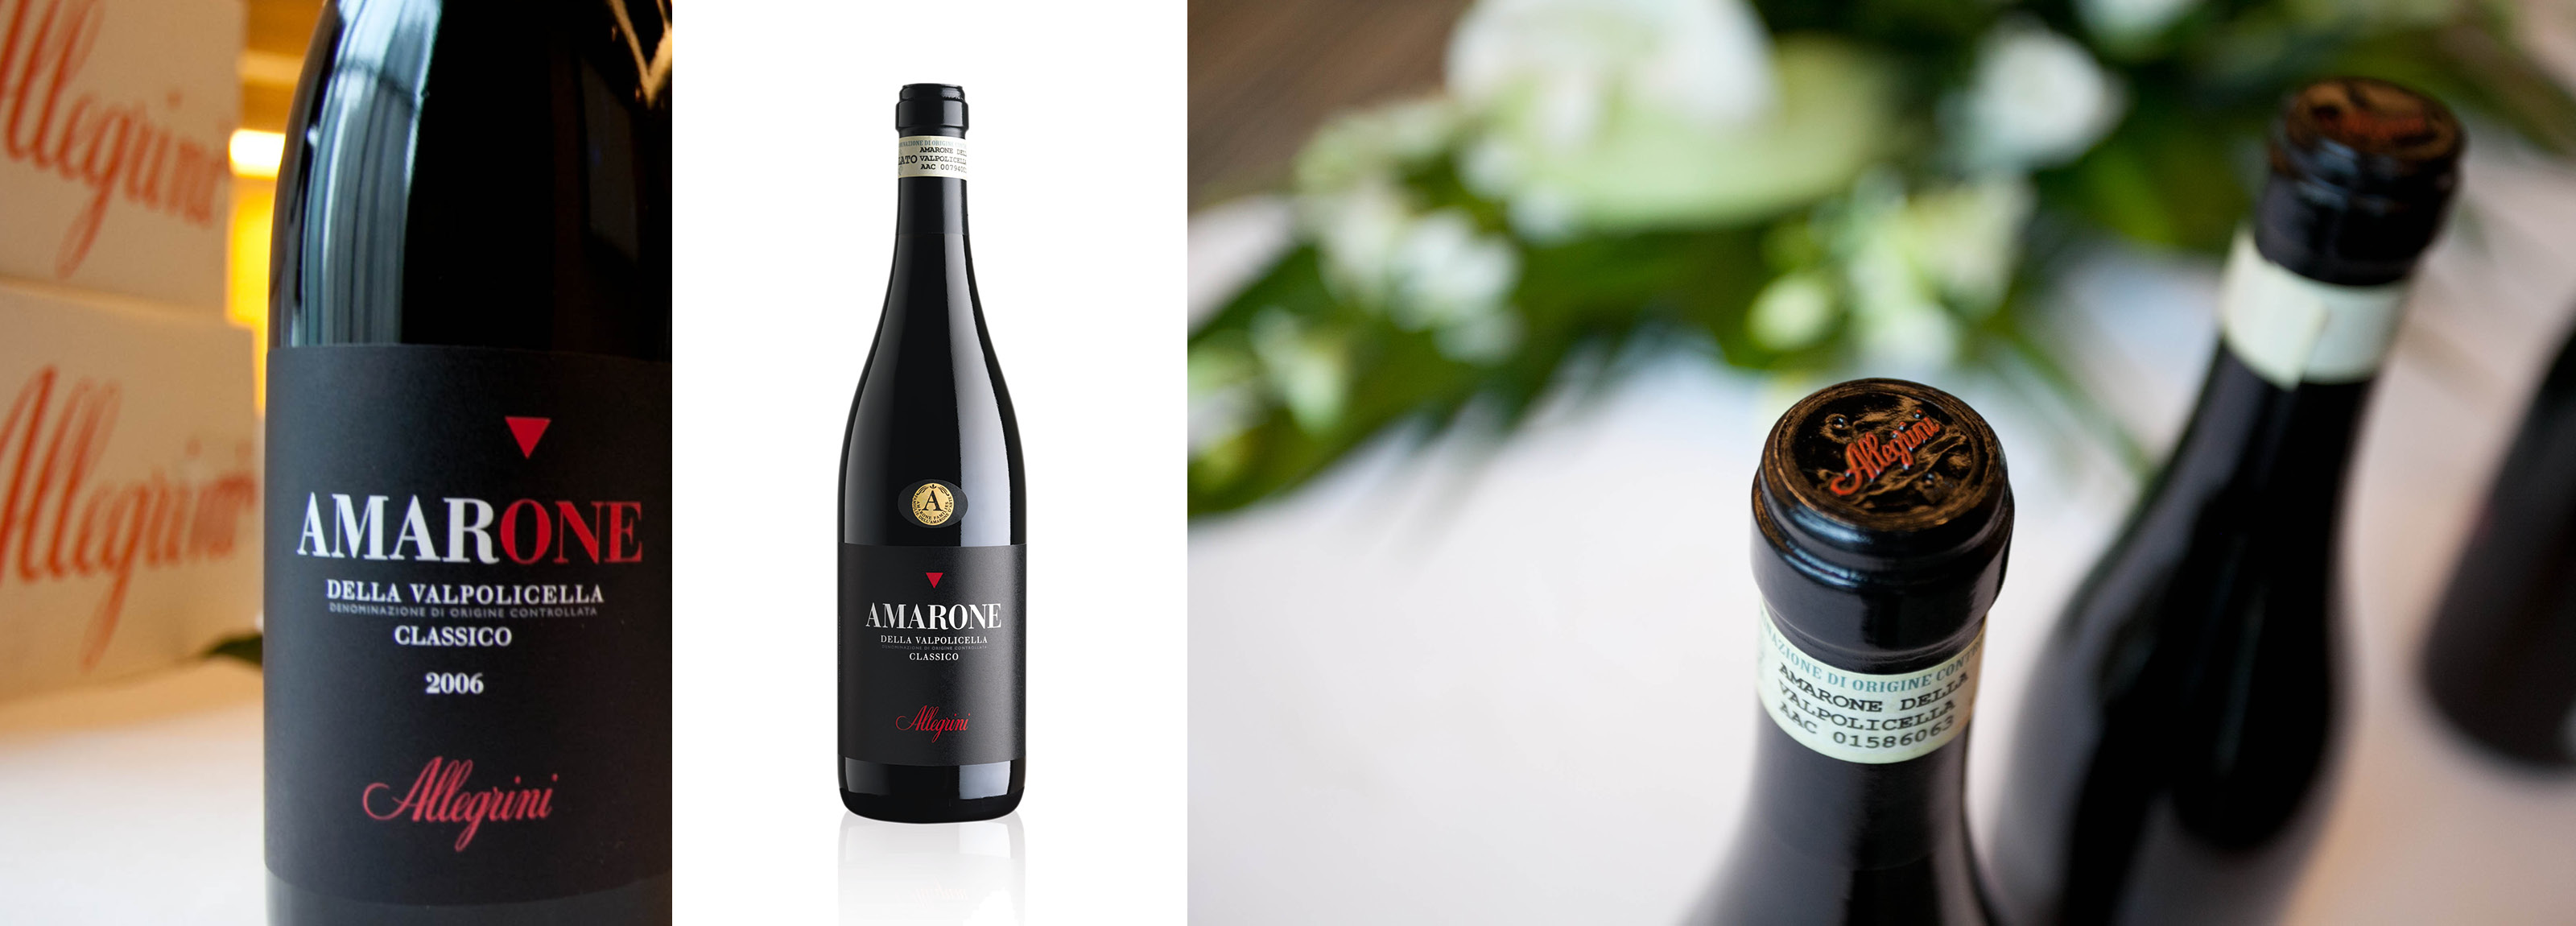 Hangar Design Group held the press conference for the launch of Allegrini's Amarone